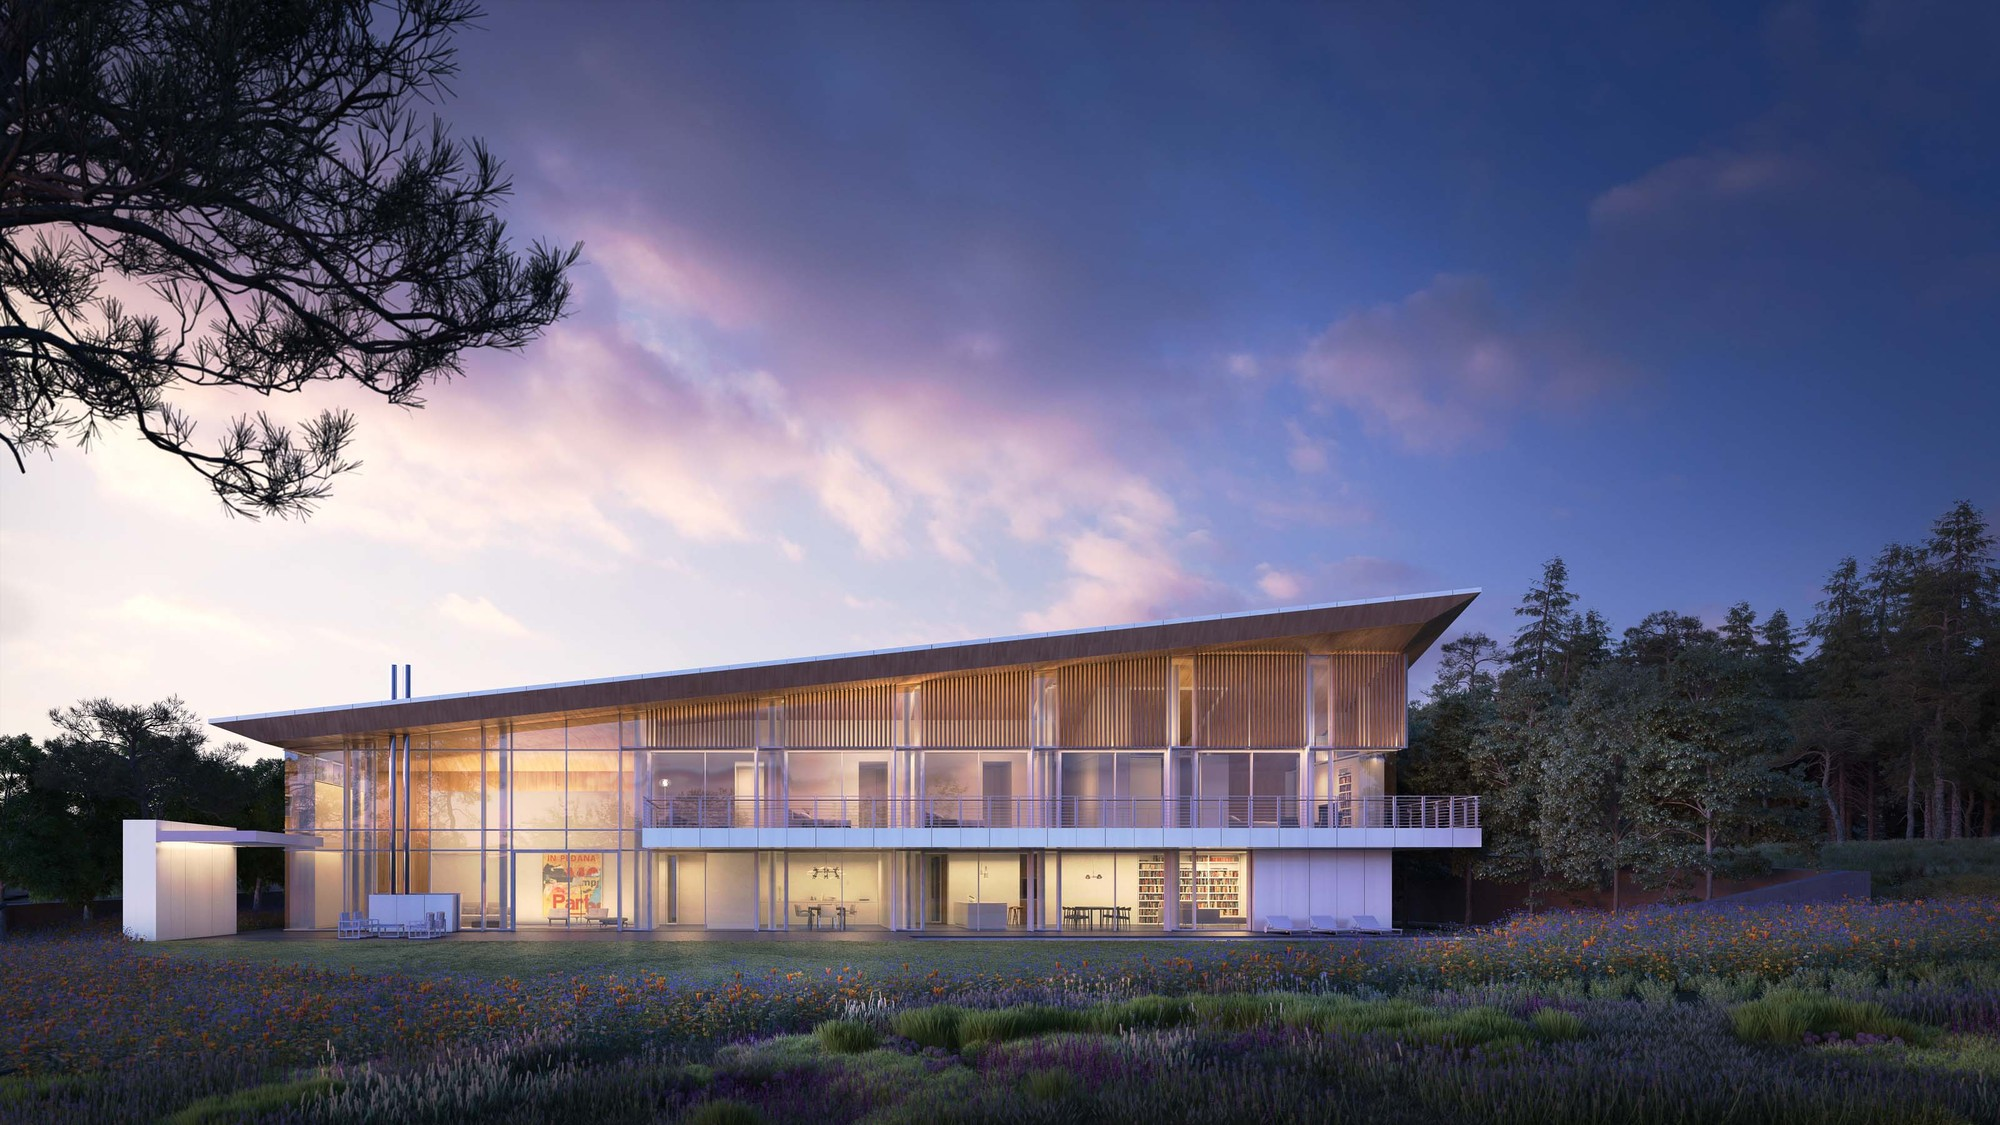 Richard meier partners designs two villas for ground up for Villa architect